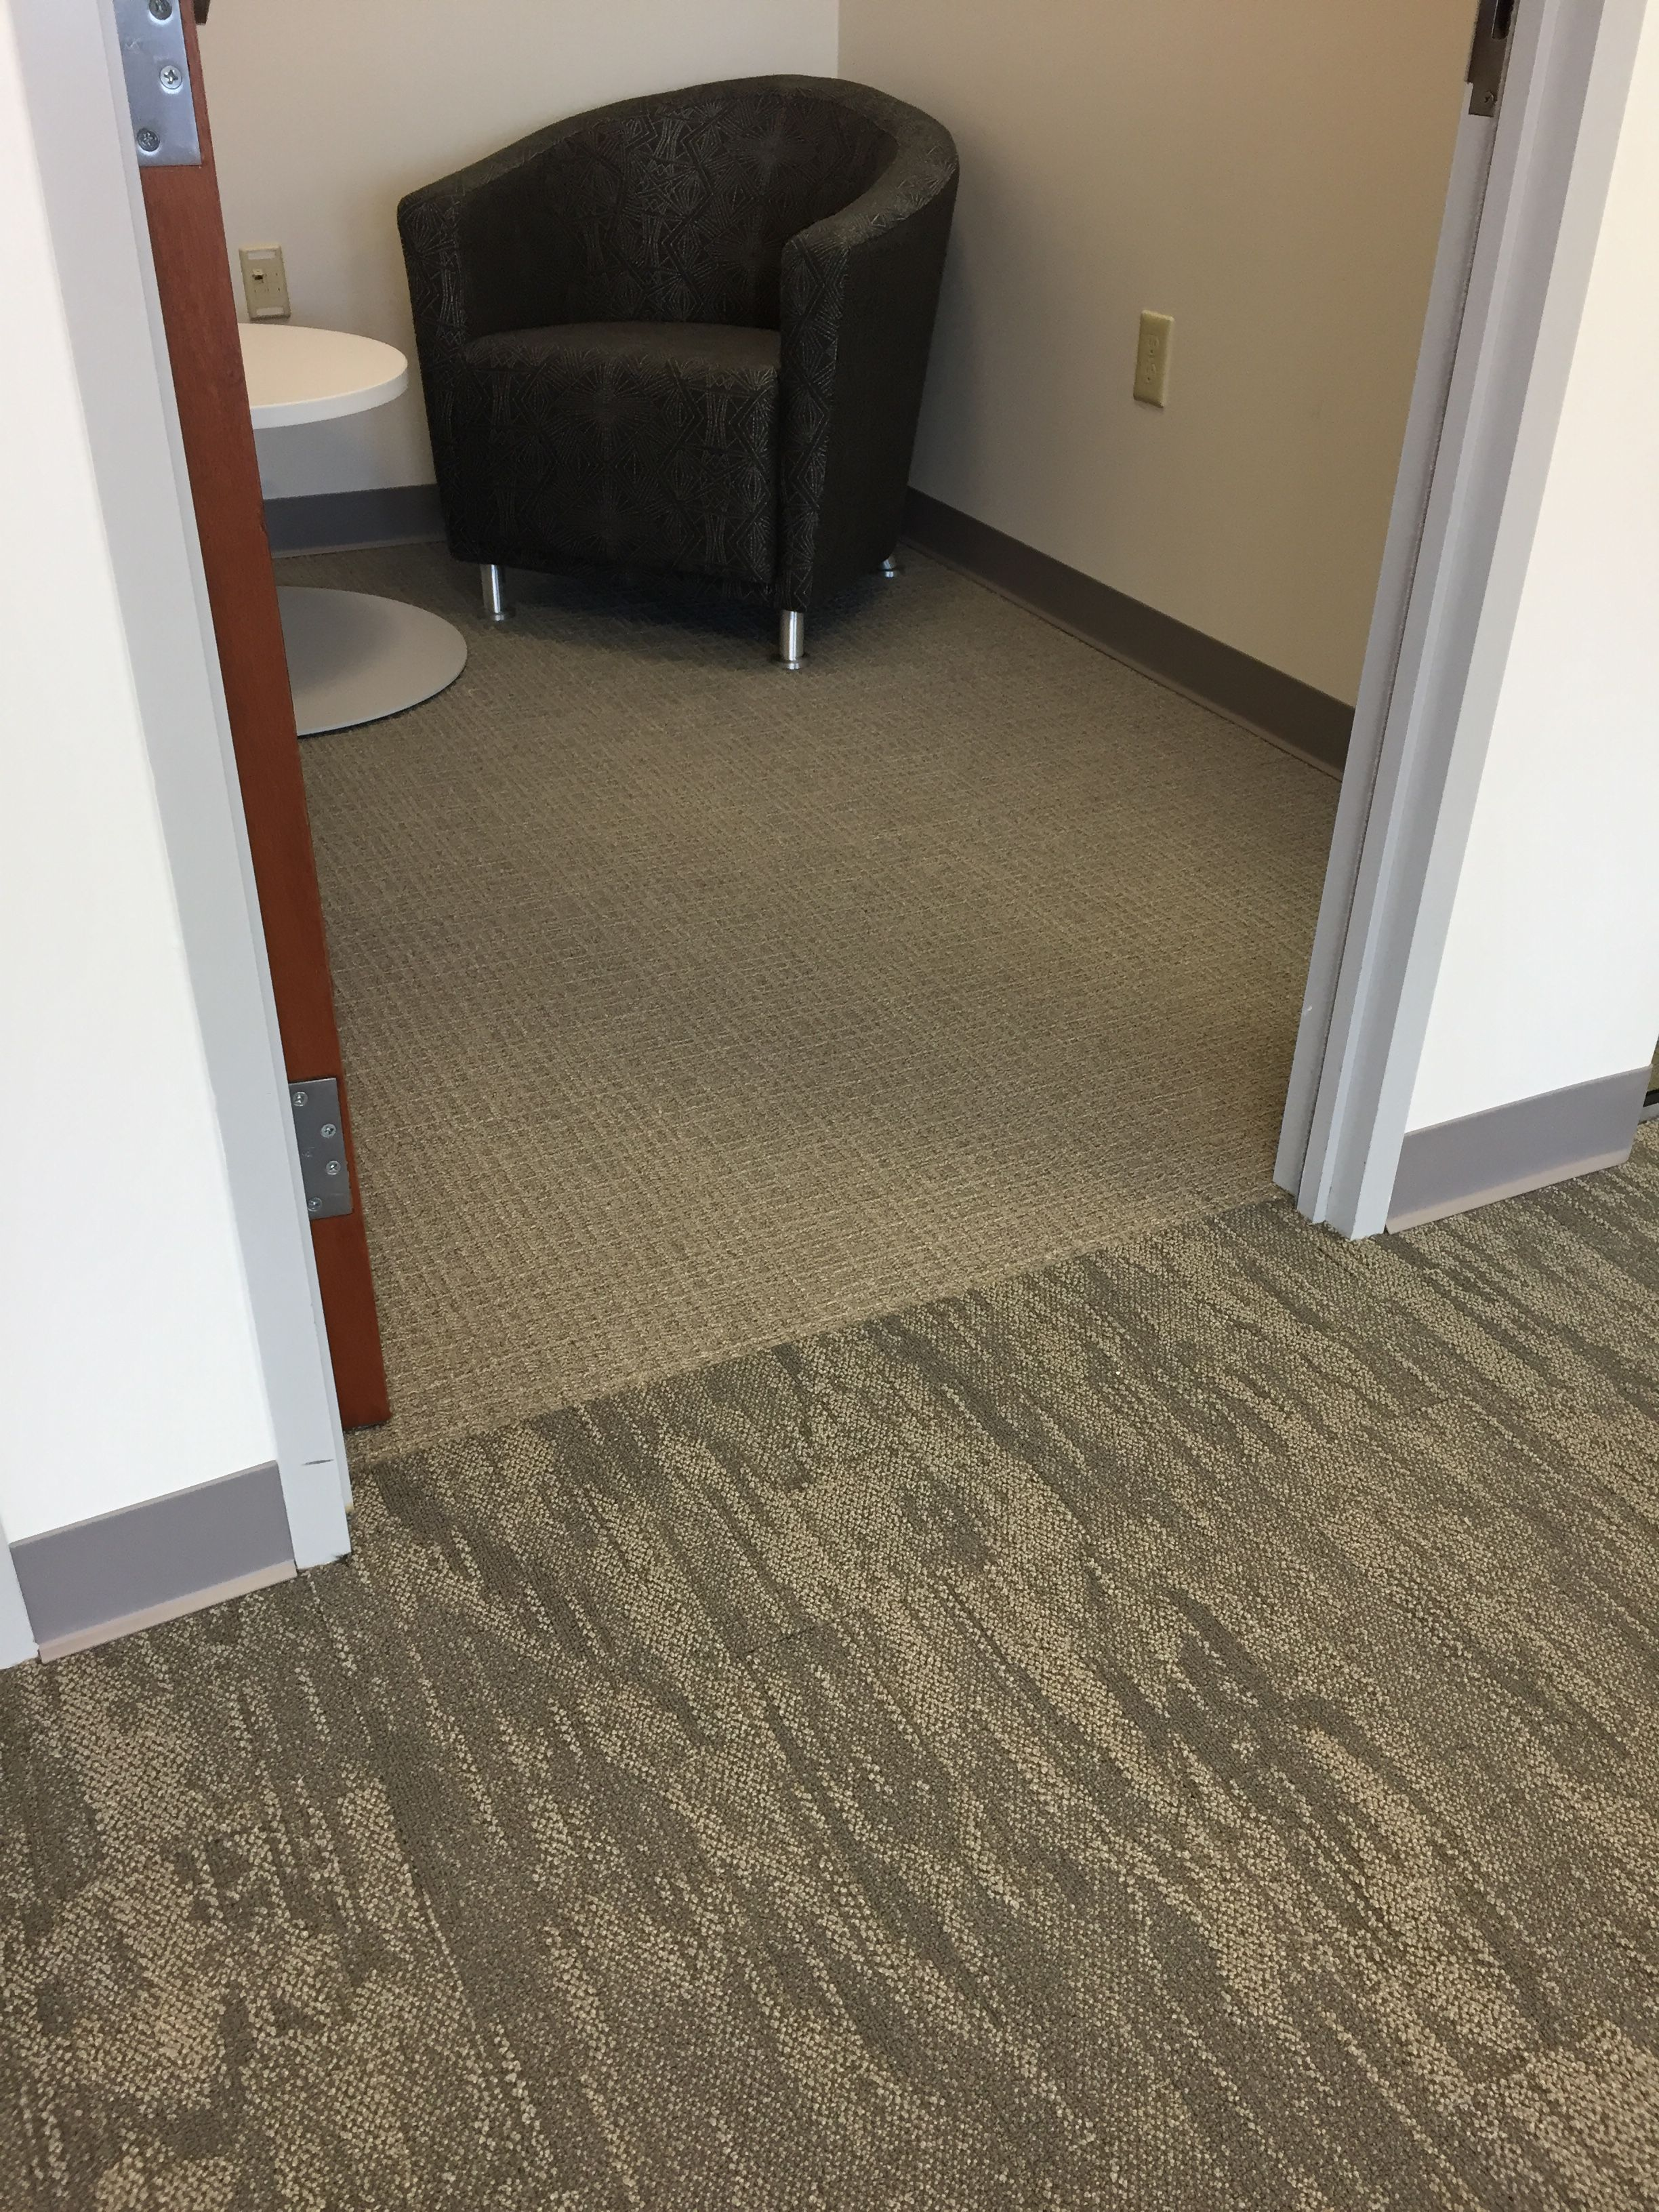 Ef Contract S Batiste Ii Tile Private Office Coordinates With Veil Tile Size Shown 12 X 48 Carpet Tiles Tiles Flooring